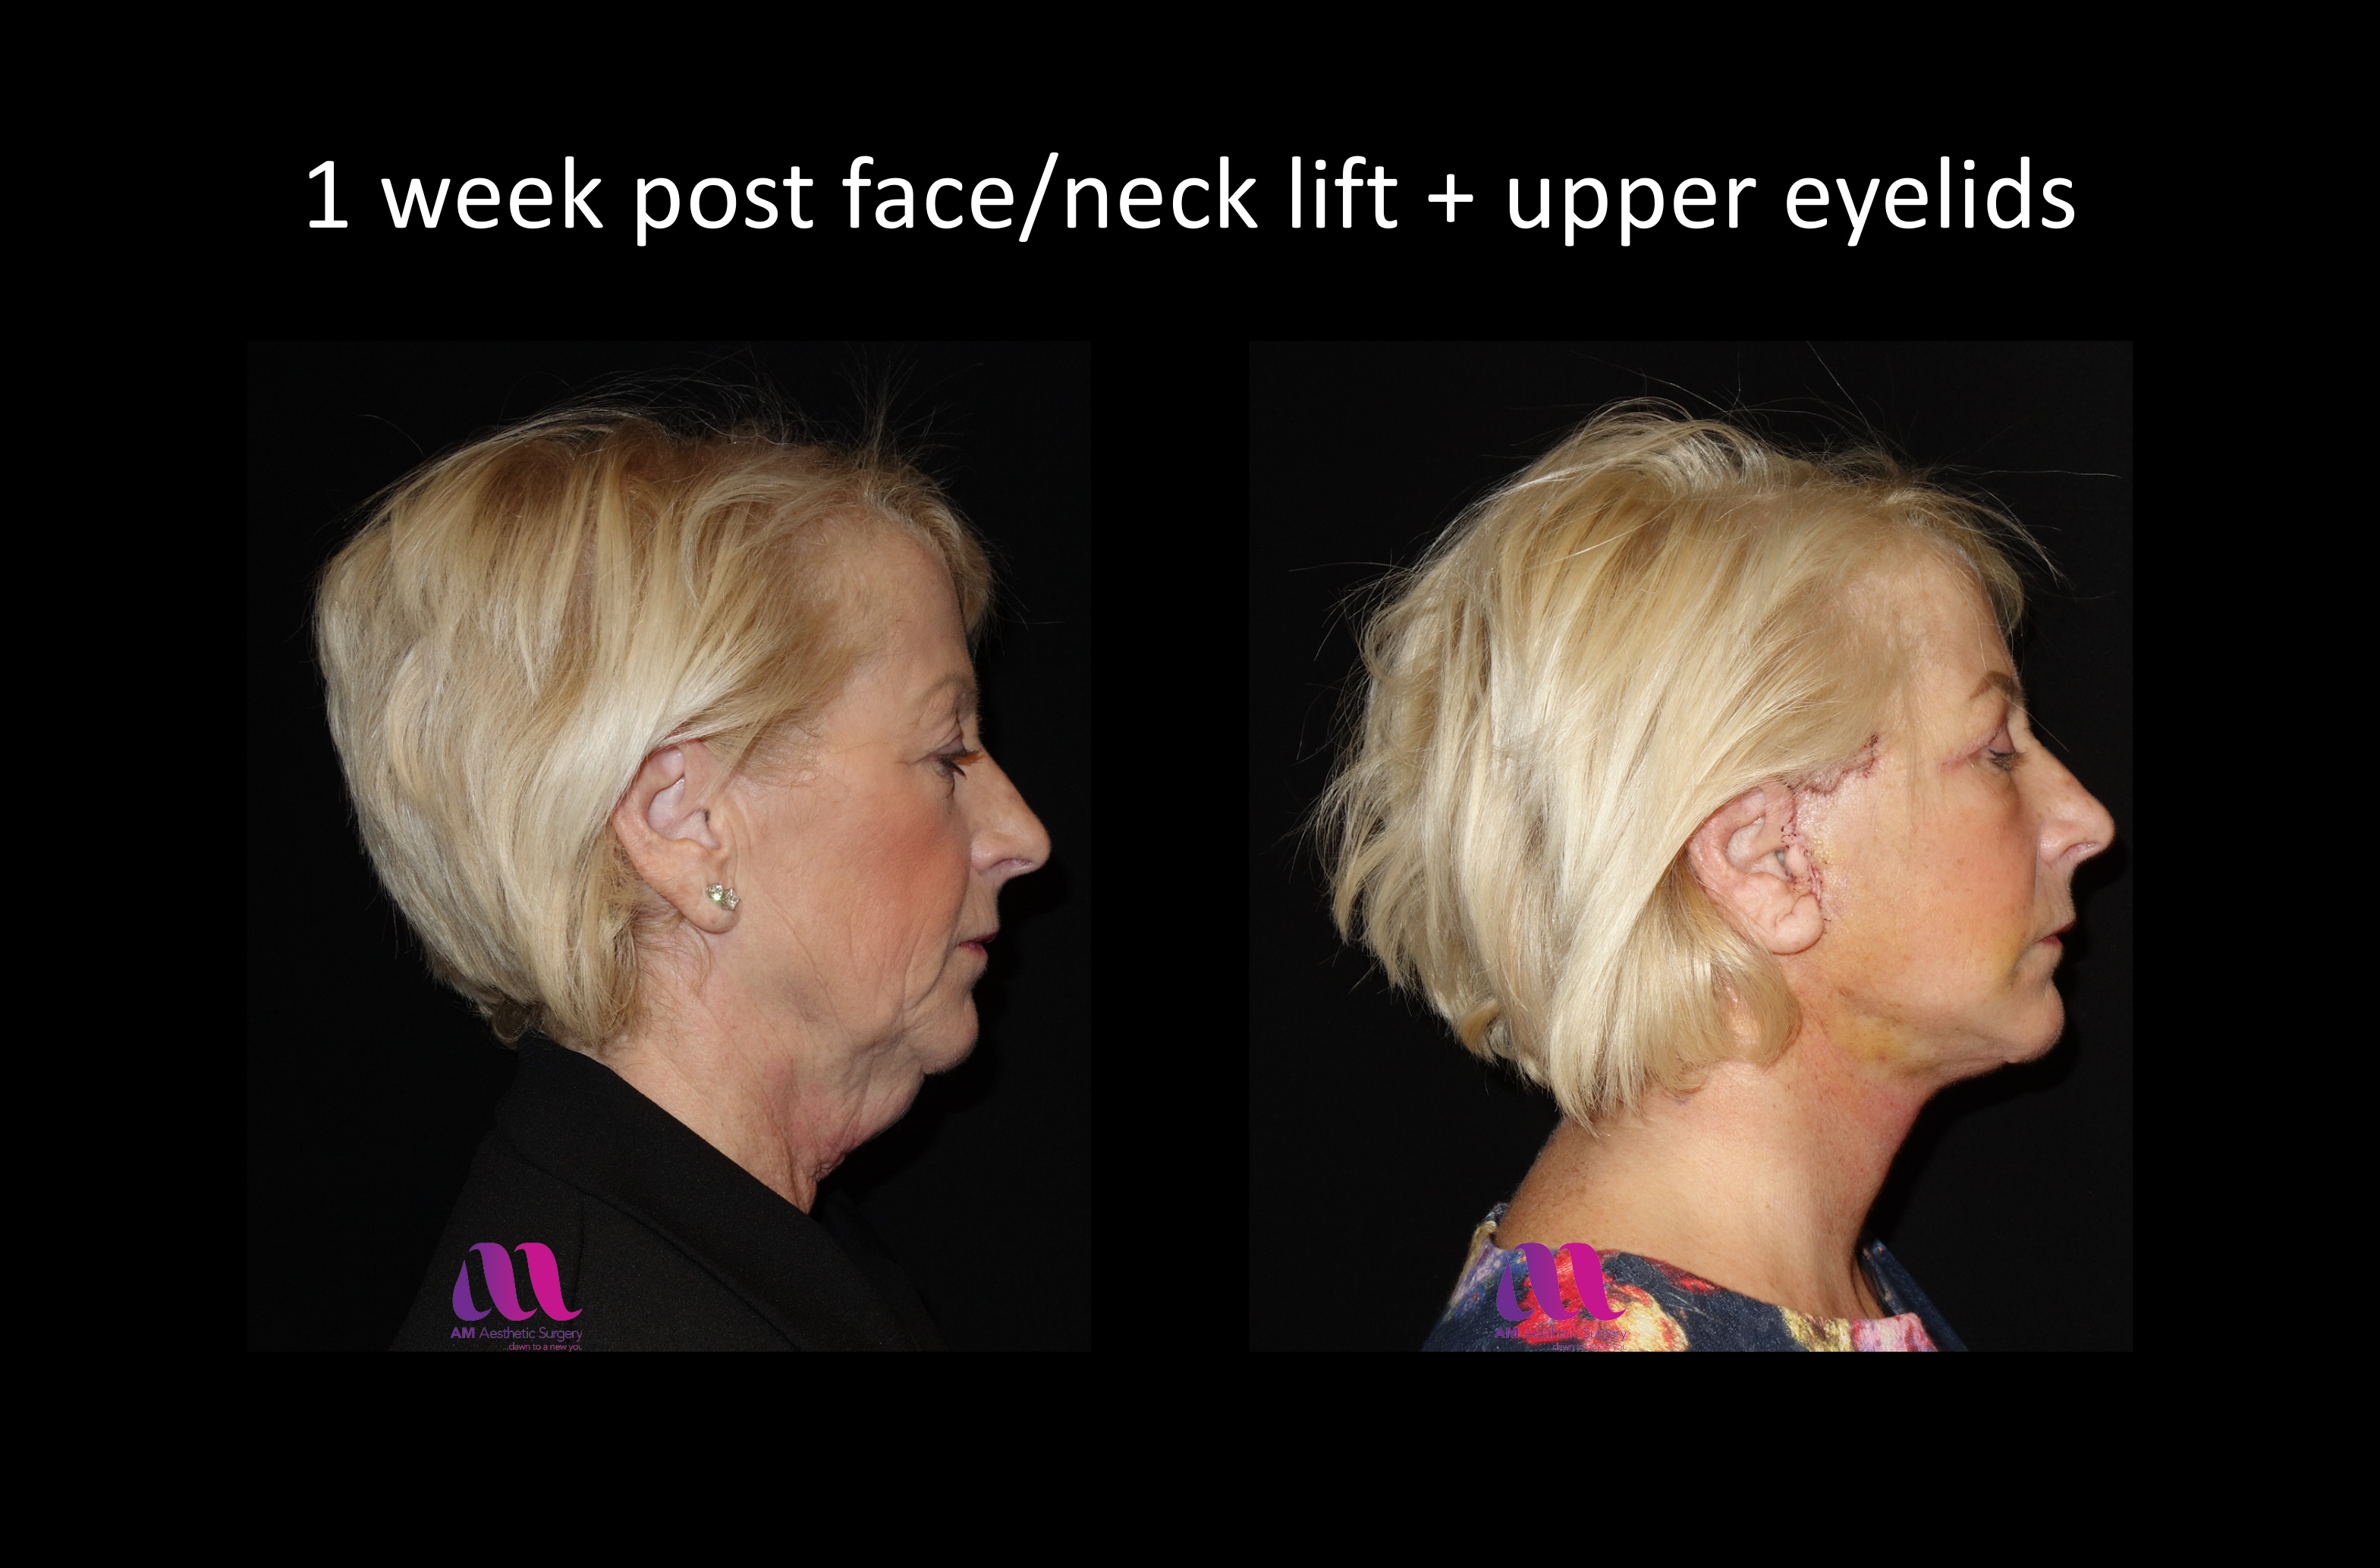 Face Lift +Upp Eyelids14b